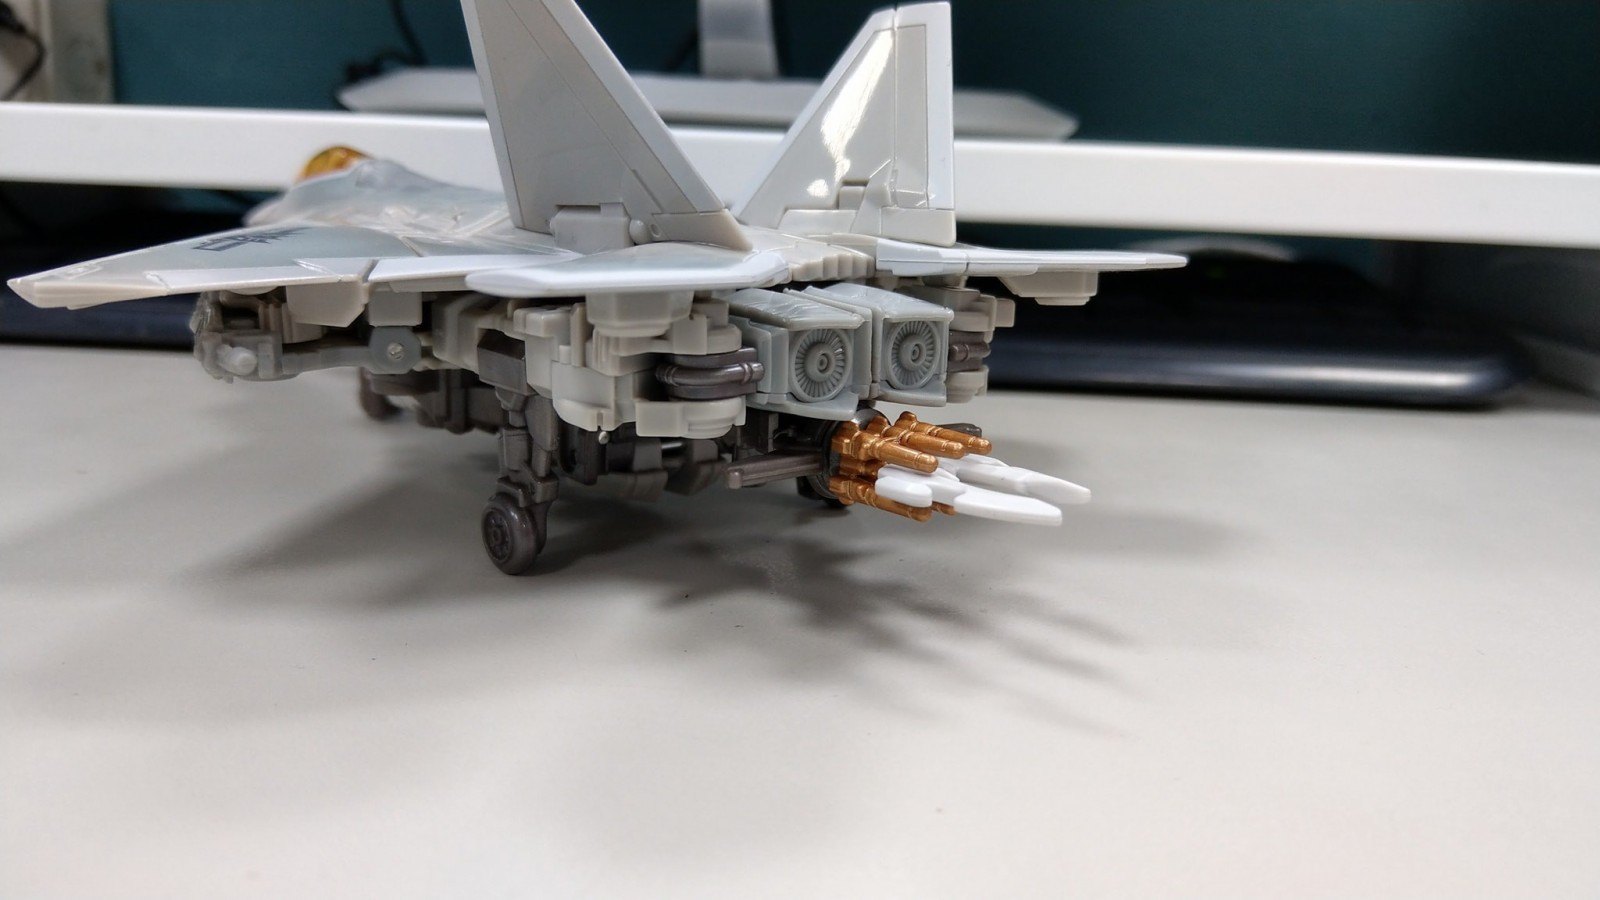 Transformers News: In-Hand Images of Transformers Studio Series 06 Starscream